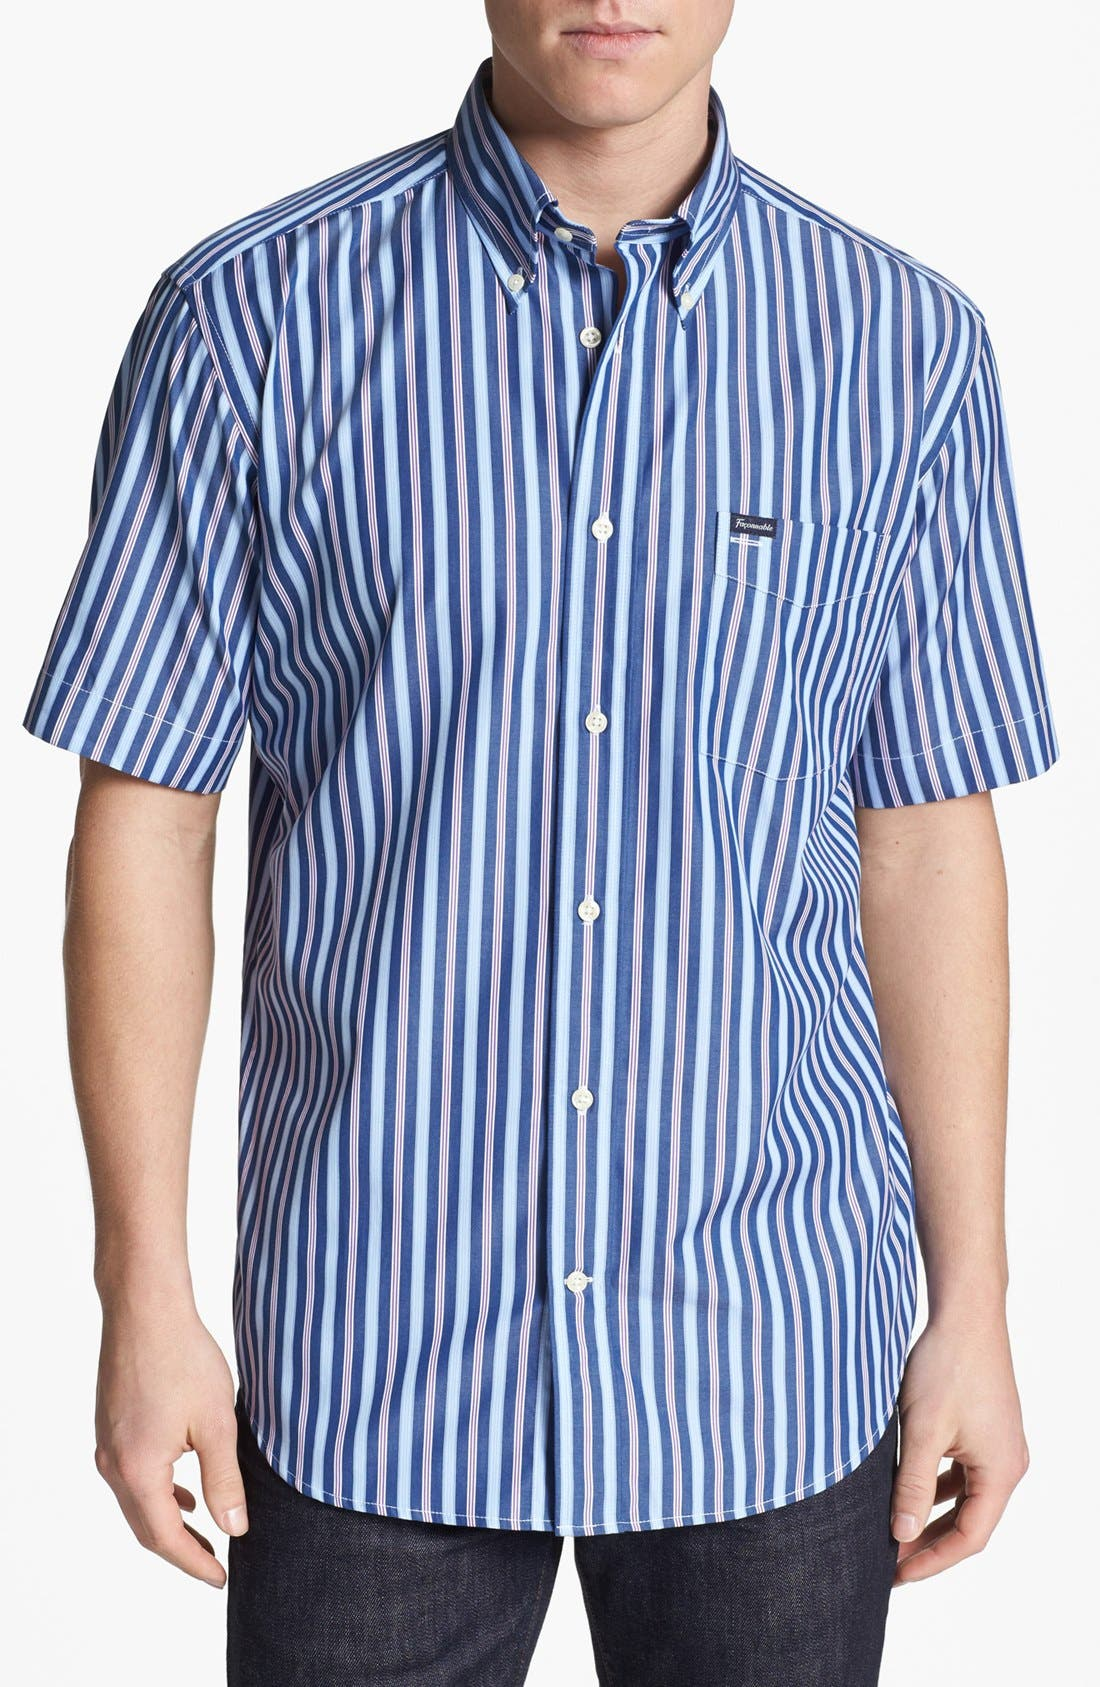 Alternate Image 1 Selected - Façonnable Classique Fit Short Sleeve Sport Shirt